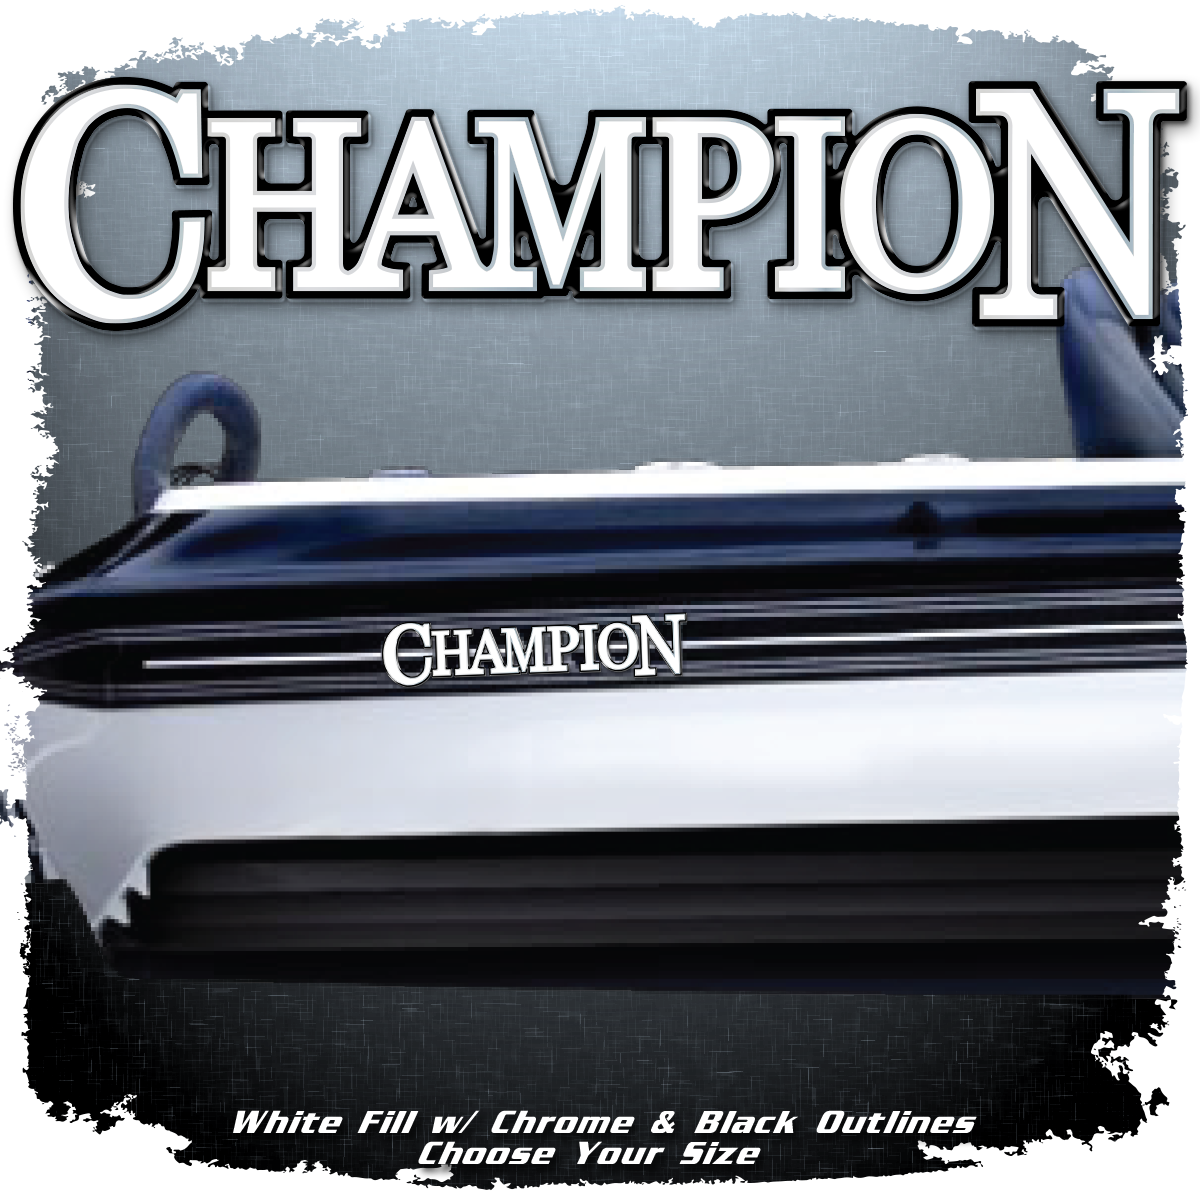 Champion Boats Flat Vinyl (1 Decal Included)